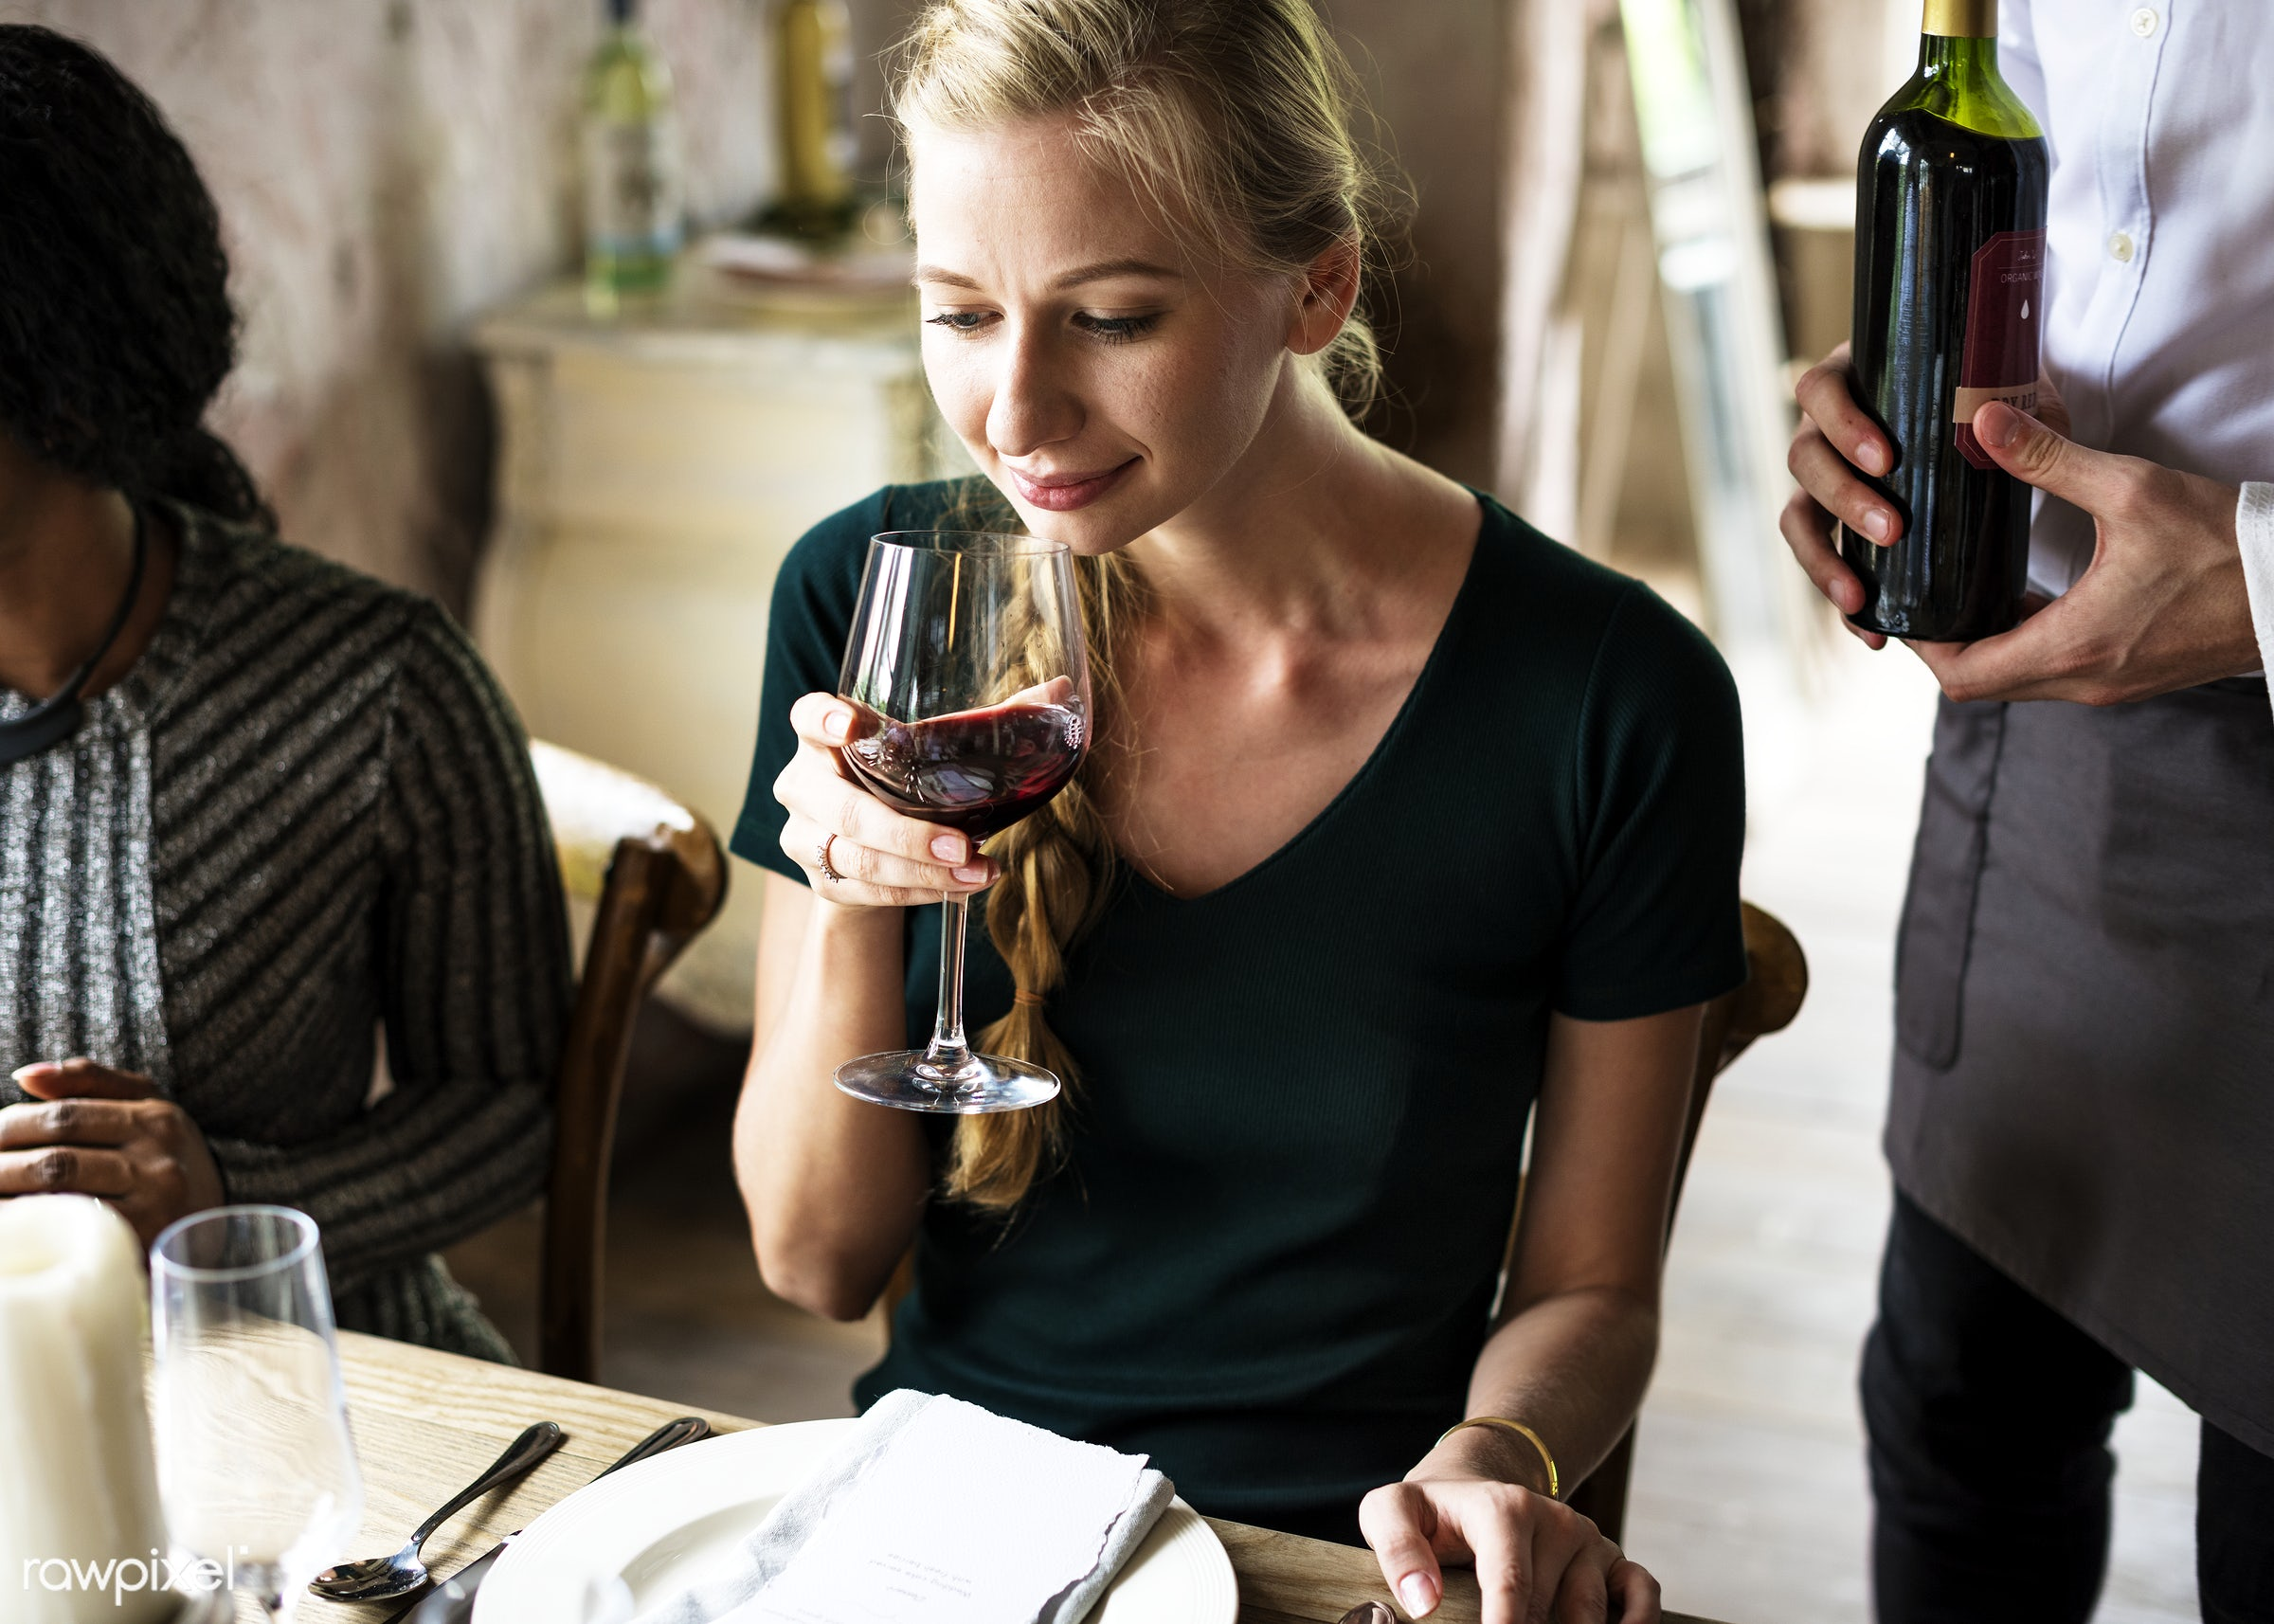 Woman Tasting Red Wine in a Classy Restaurant - food, wine, gourmet, tasting, restaurant, red wine, adult, beverage,...